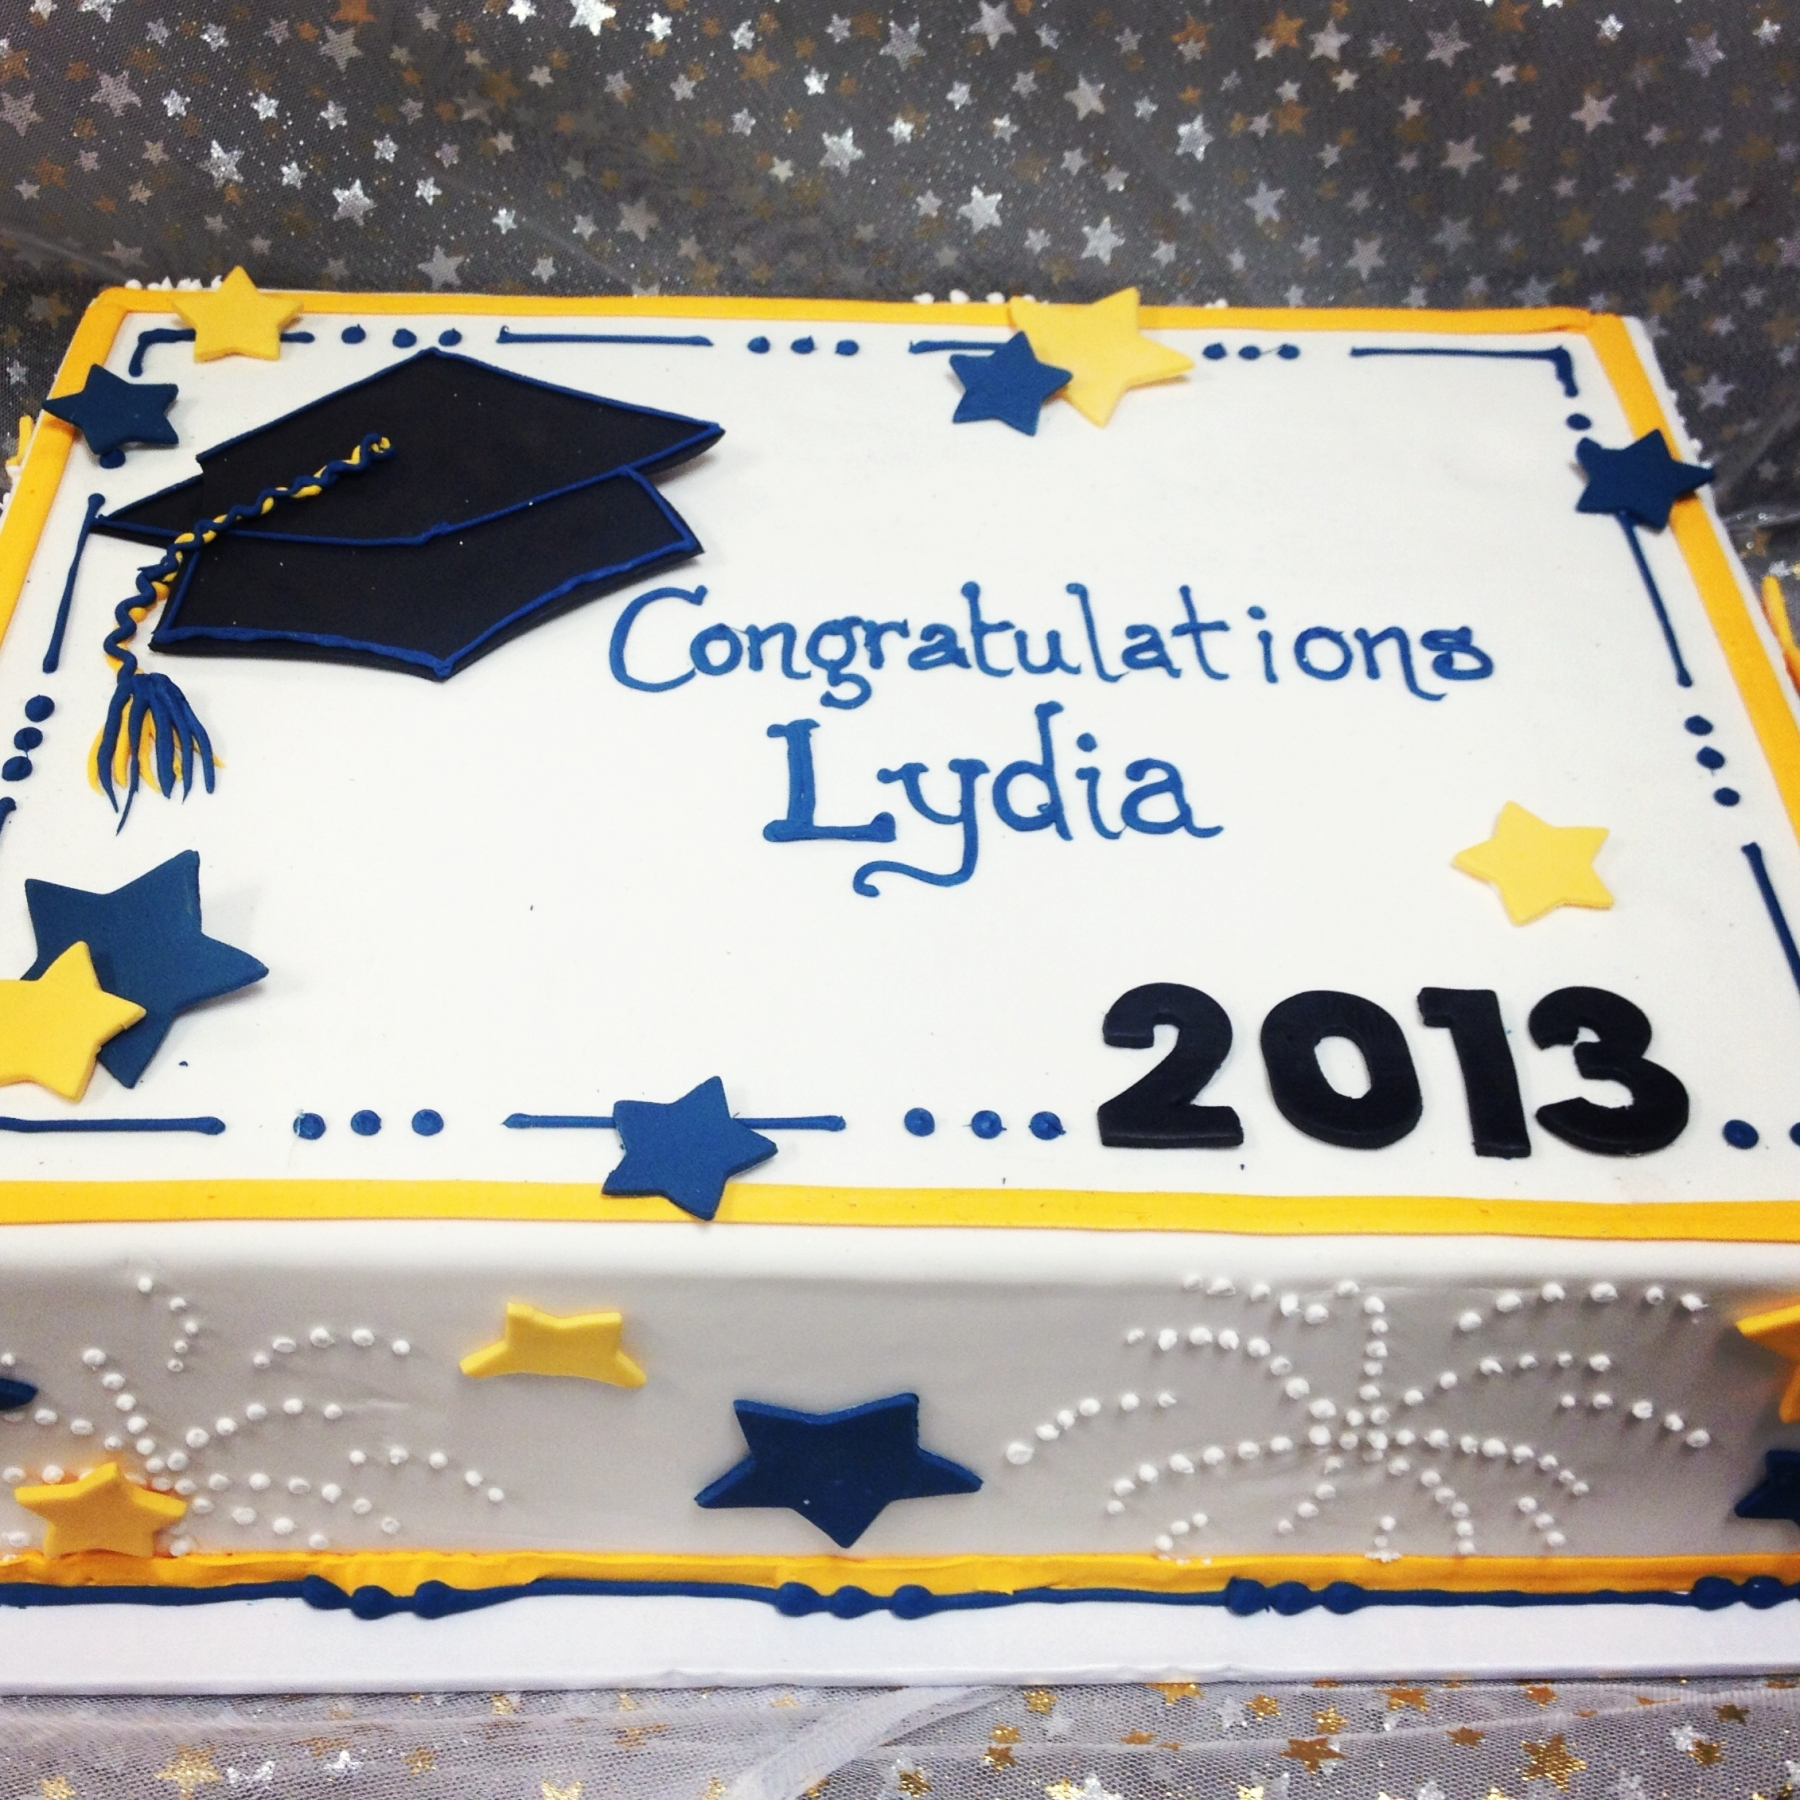 Images Of Graduation Cake : 1000+ images about graduation party ideas on Pinterest ...